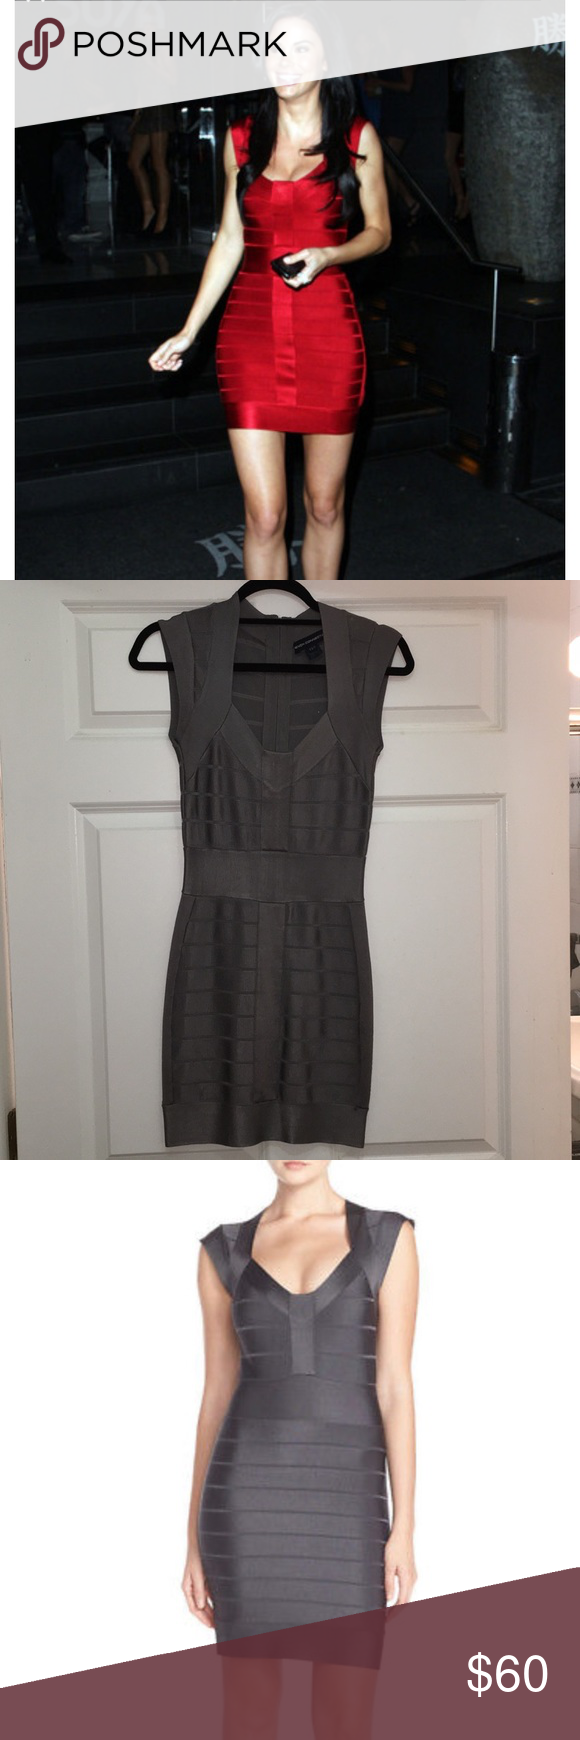 19114d76d2b Grey bandage bodycon dress French Connection bandage dress in grey. Worn a  few times and